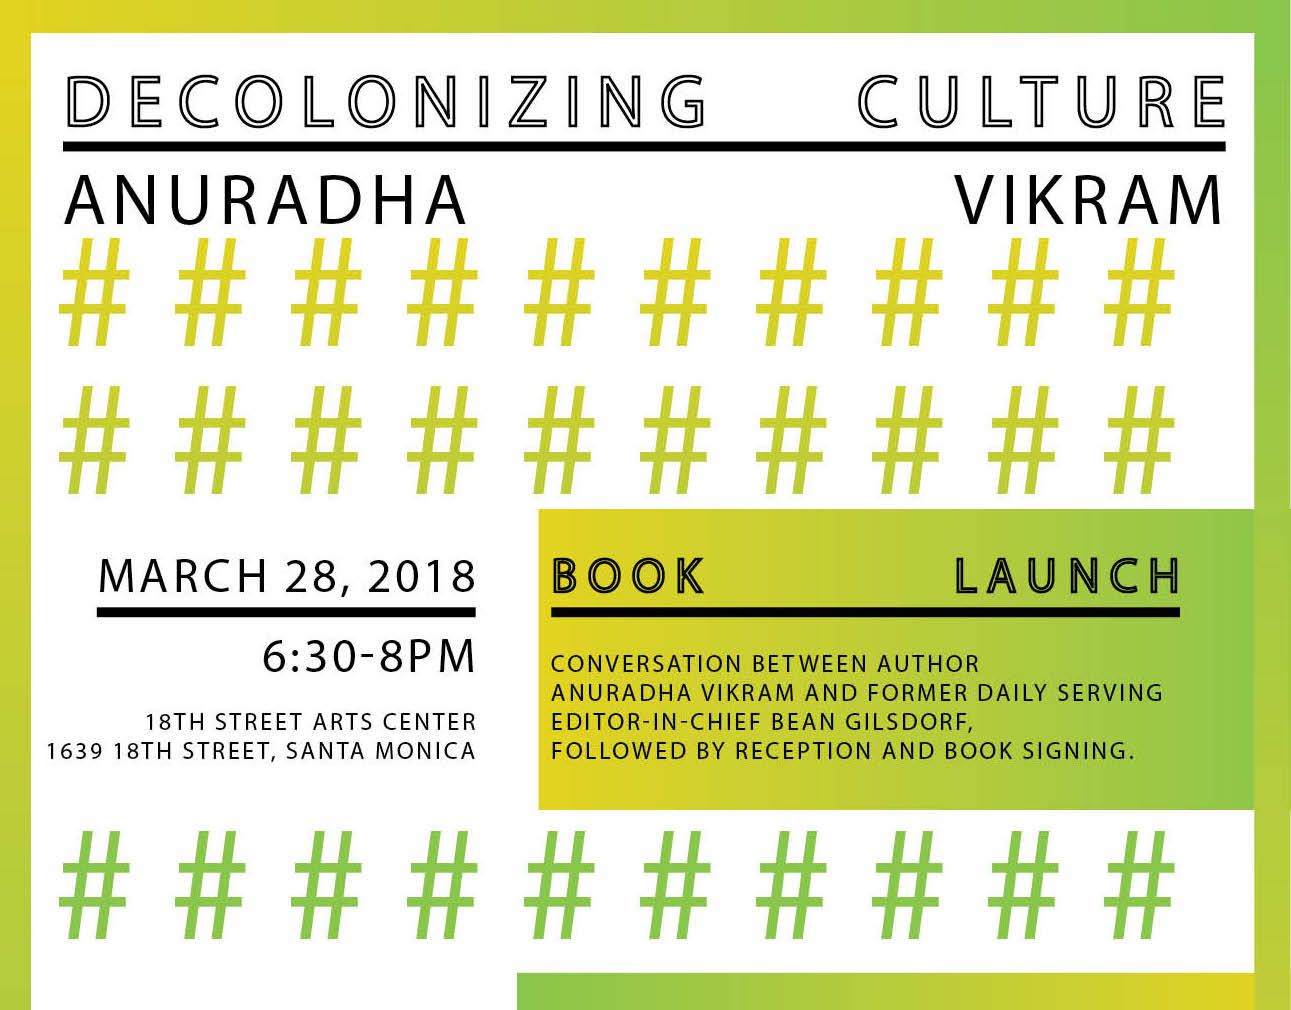 Decolonizing Culture: A Book Launch + Conversation With Anuradha Vikram And Bean Gilsdorf